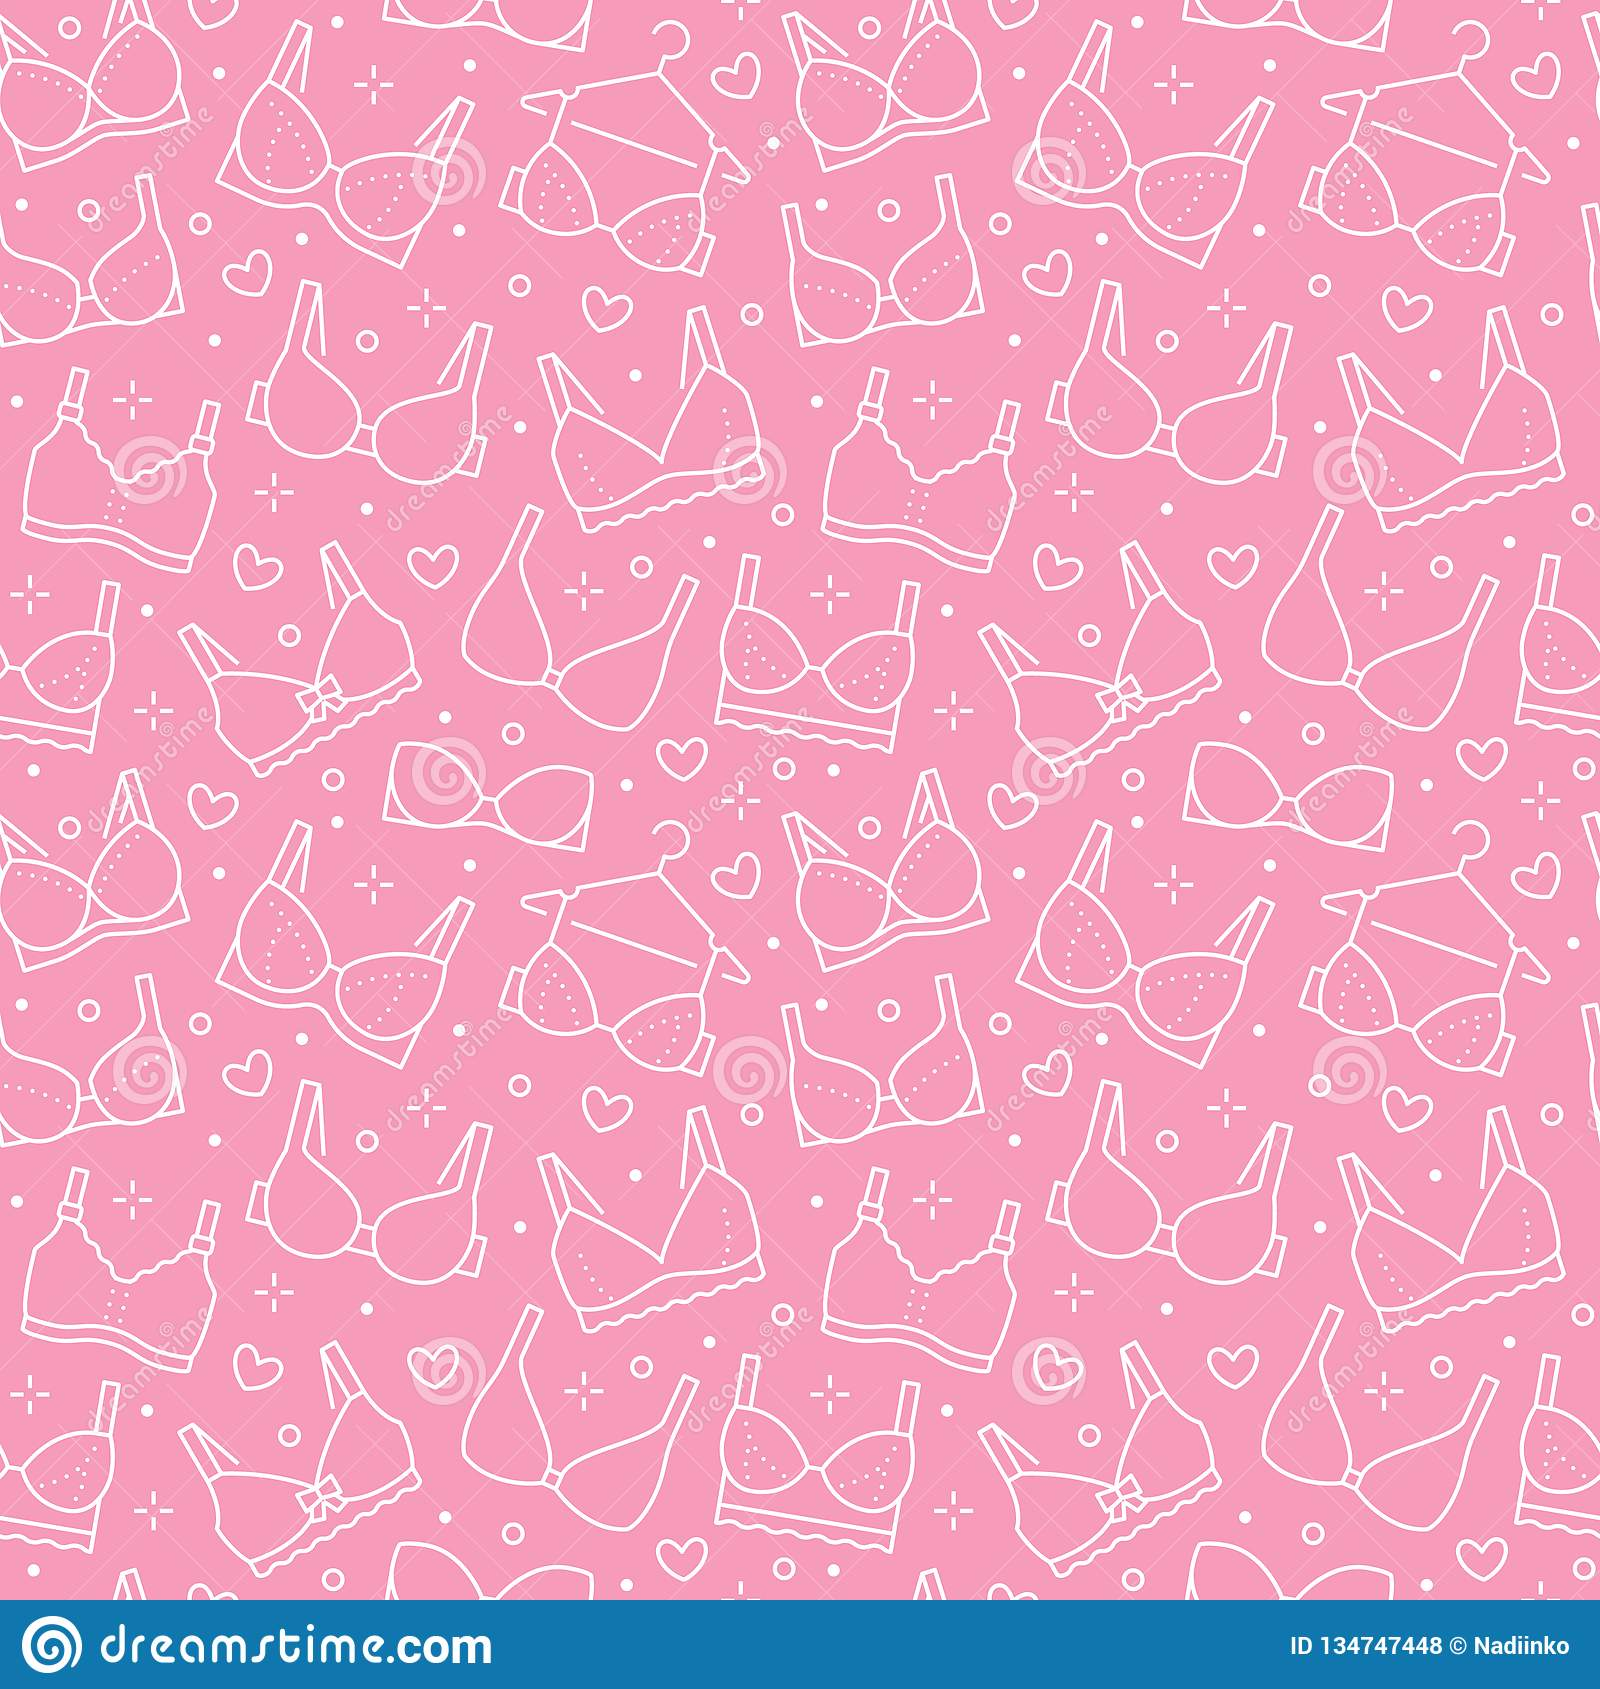 Lingerie seamless pattern with flat line icons of bra types. Woman underwear background, vector illustrations of